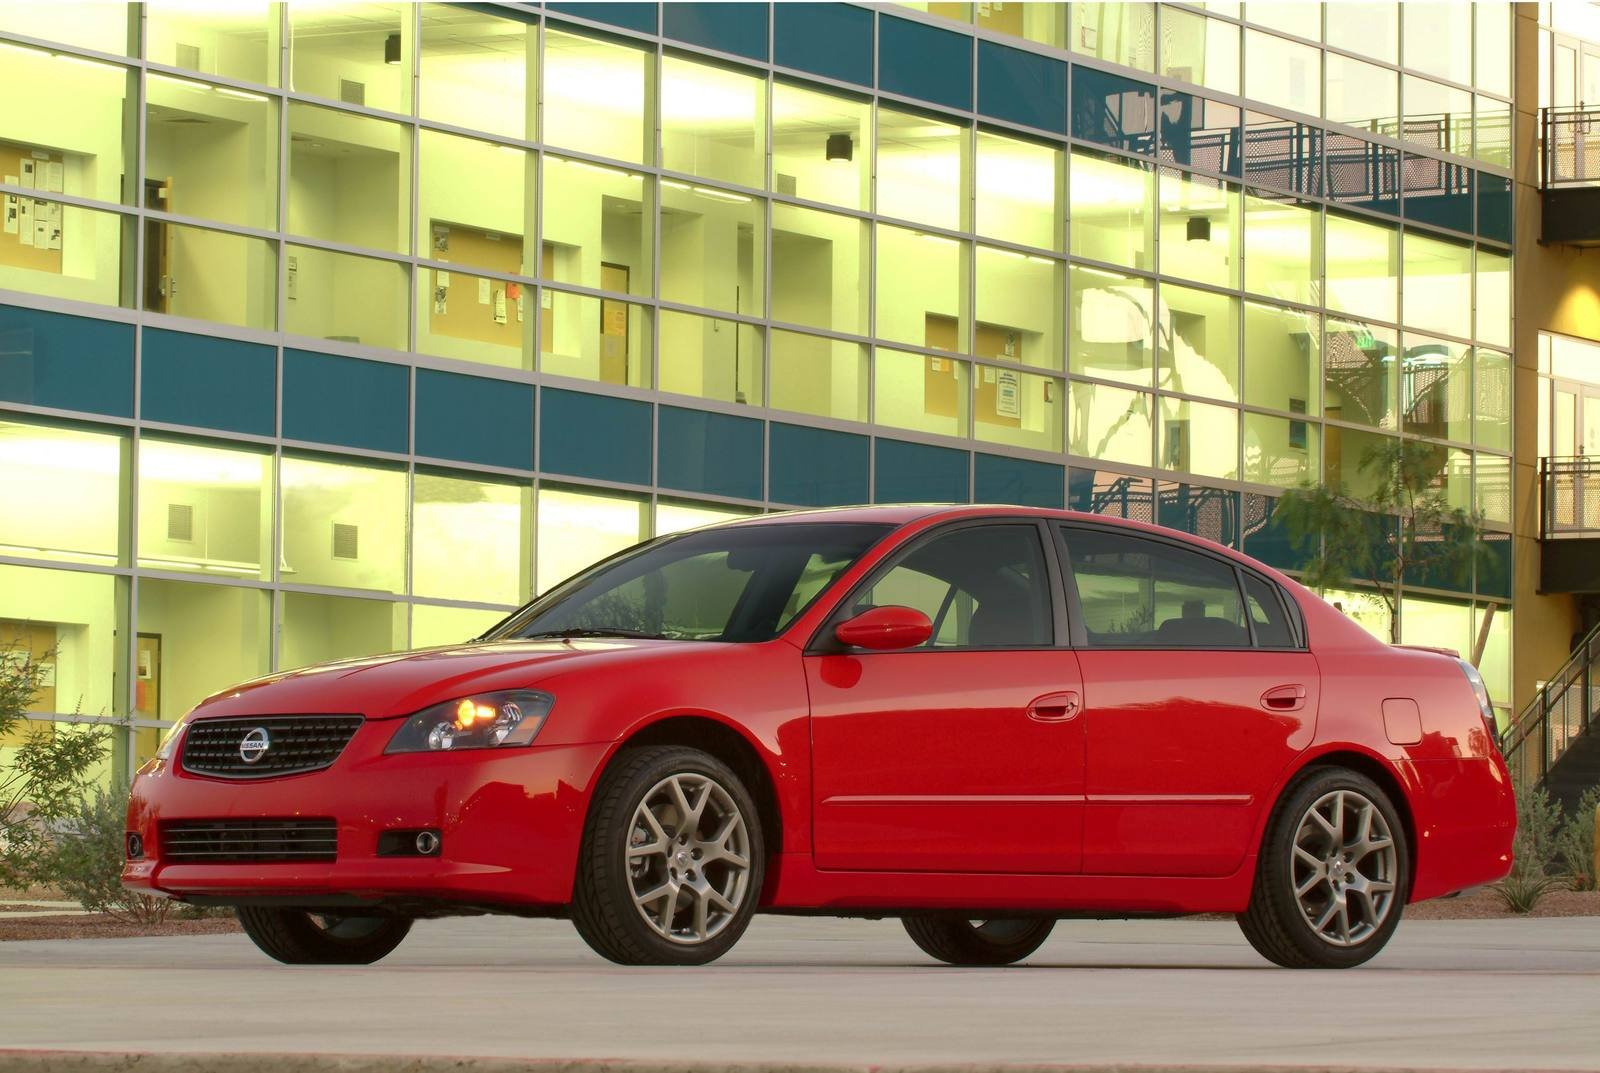 2006 nissan altima se r picture 41135 car review top speed. Black Bedroom Furniture Sets. Home Design Ideas